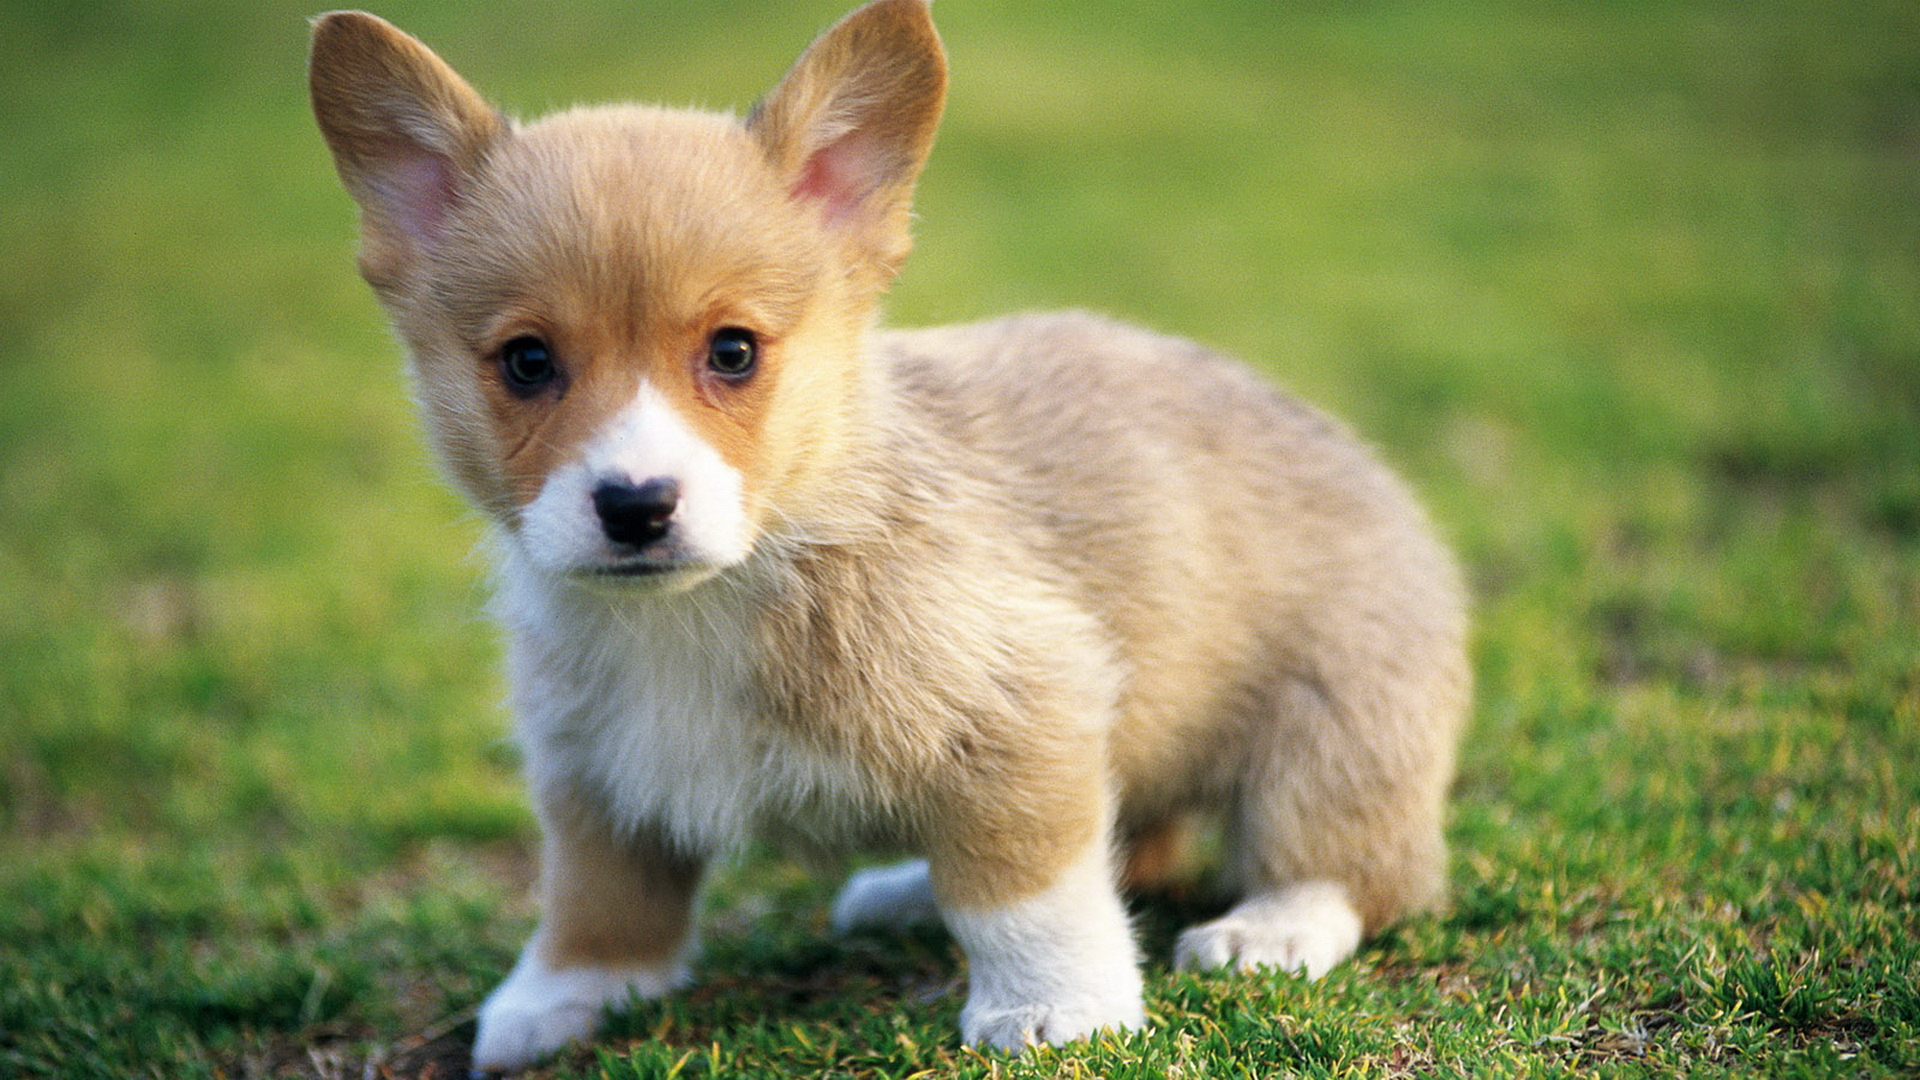 adorable-corgi-1920x1080-wallpaper-wp3802214